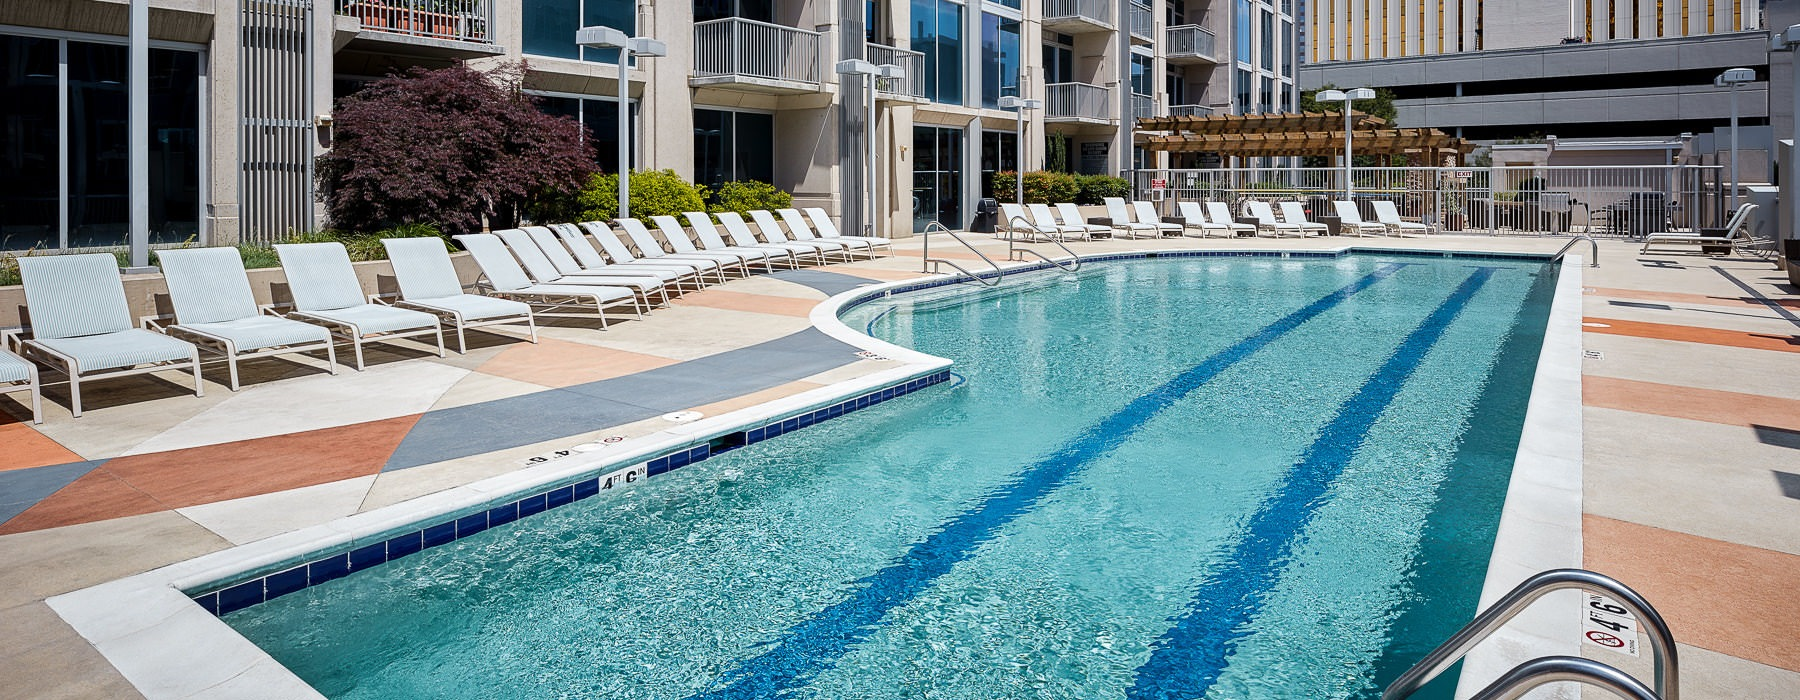 outdoor swimming pool surrounded by lounge chairs